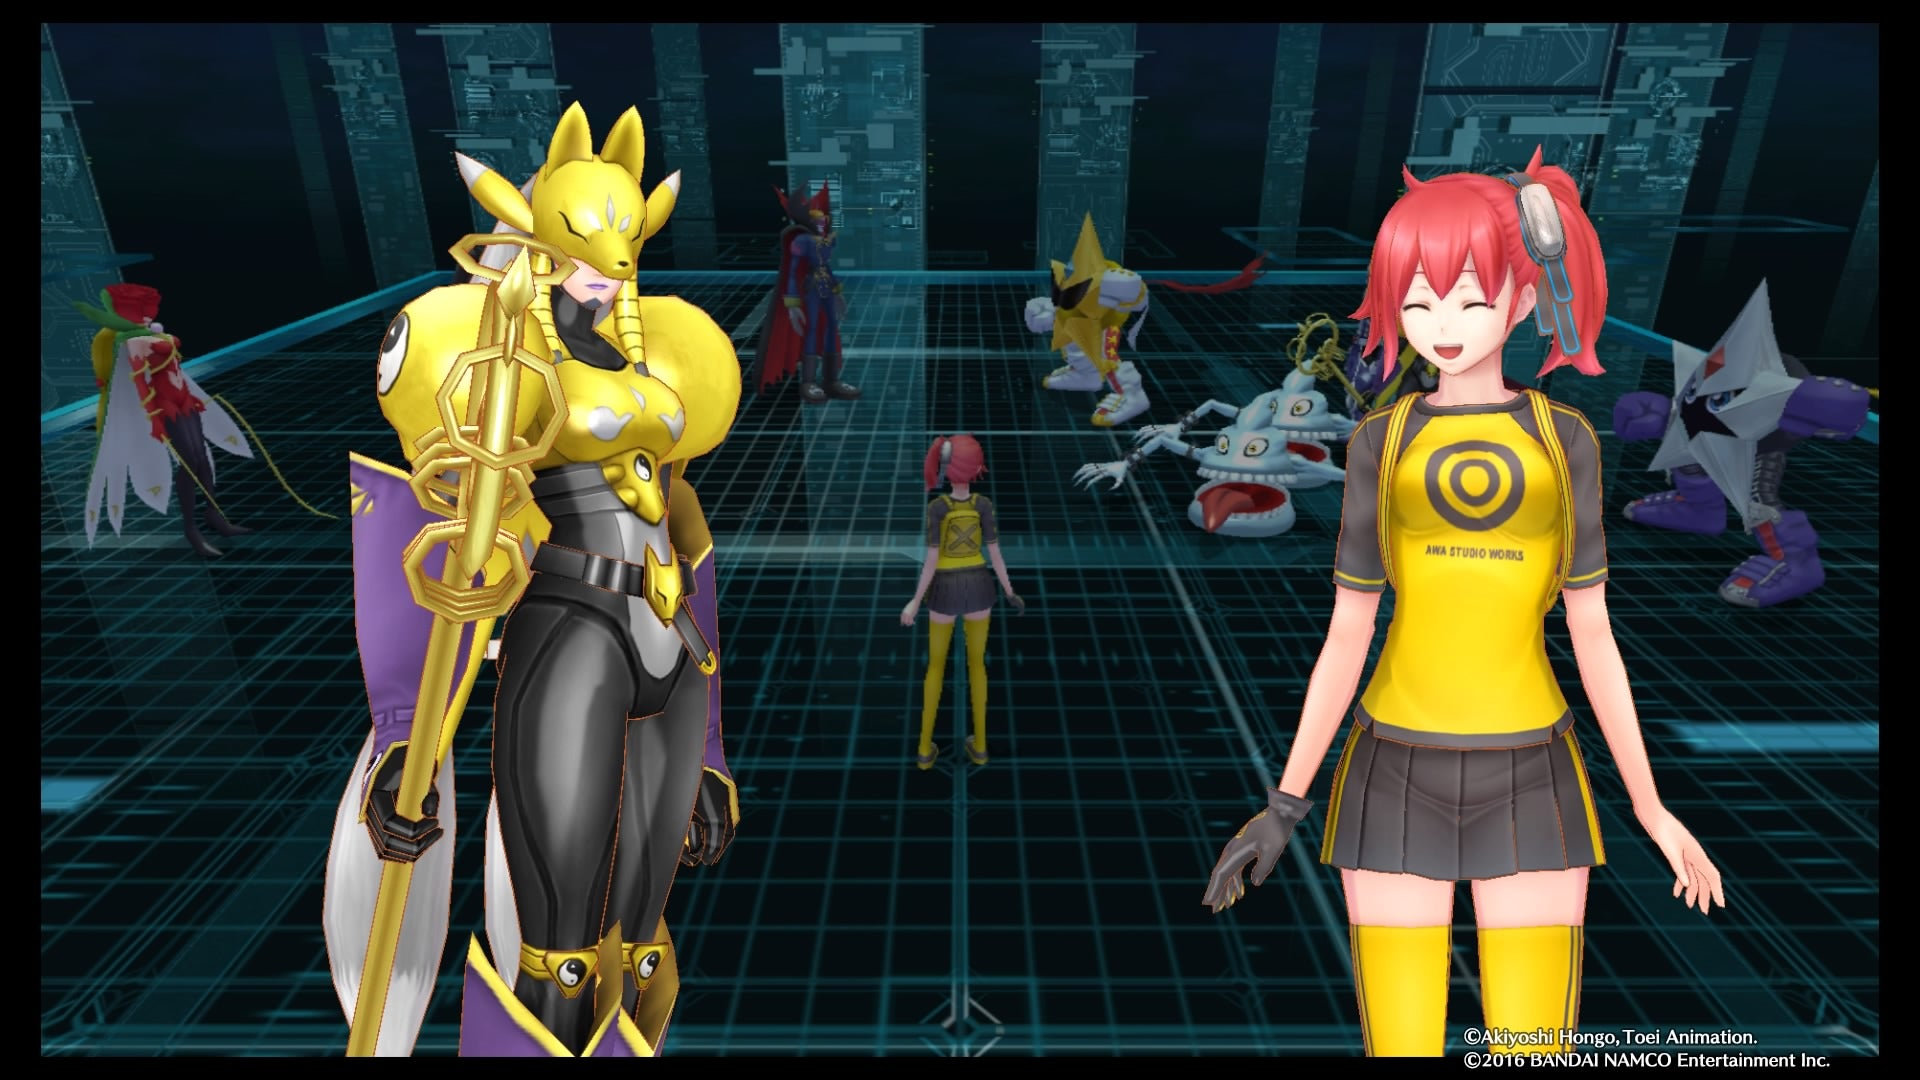 Digimon Cyber Sleuth Is One Of The Best Games I've Played In 2016